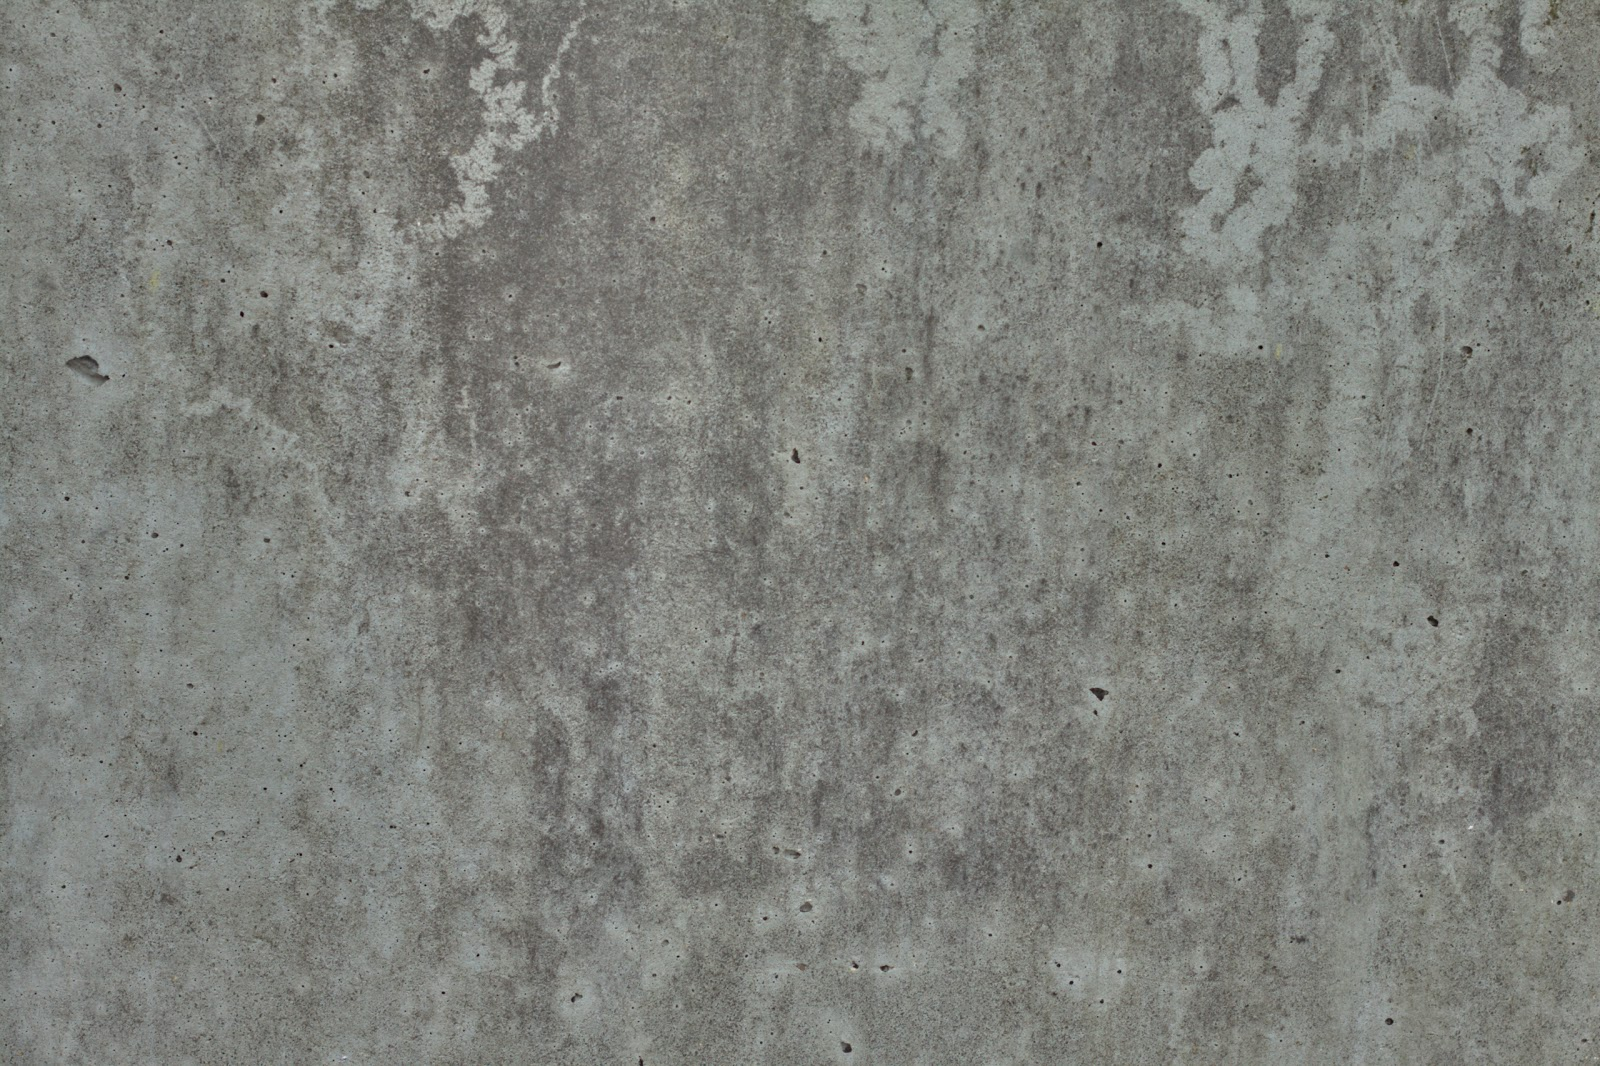 Concrete wall smooth pillar texture